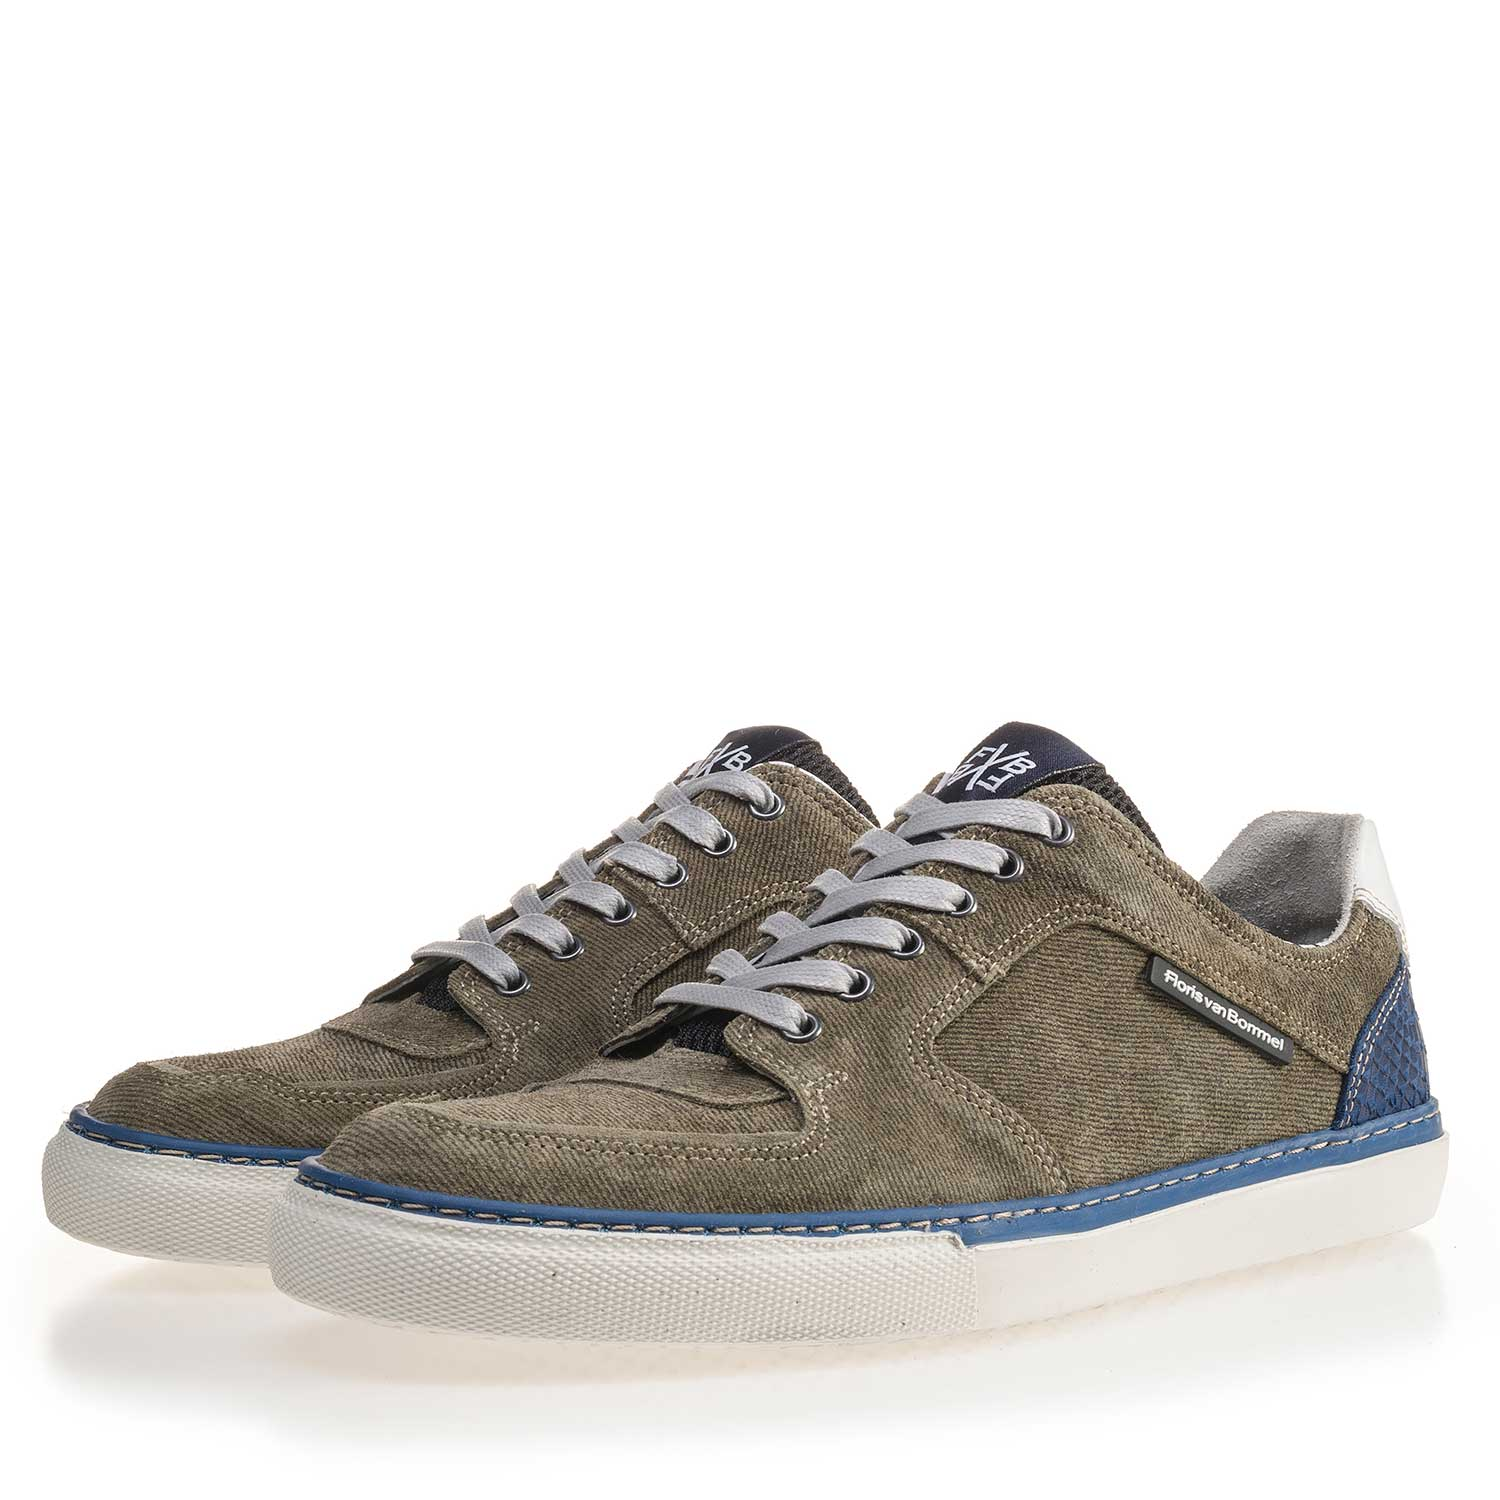 16252/05 - Olive green patterned suede leather sneaker